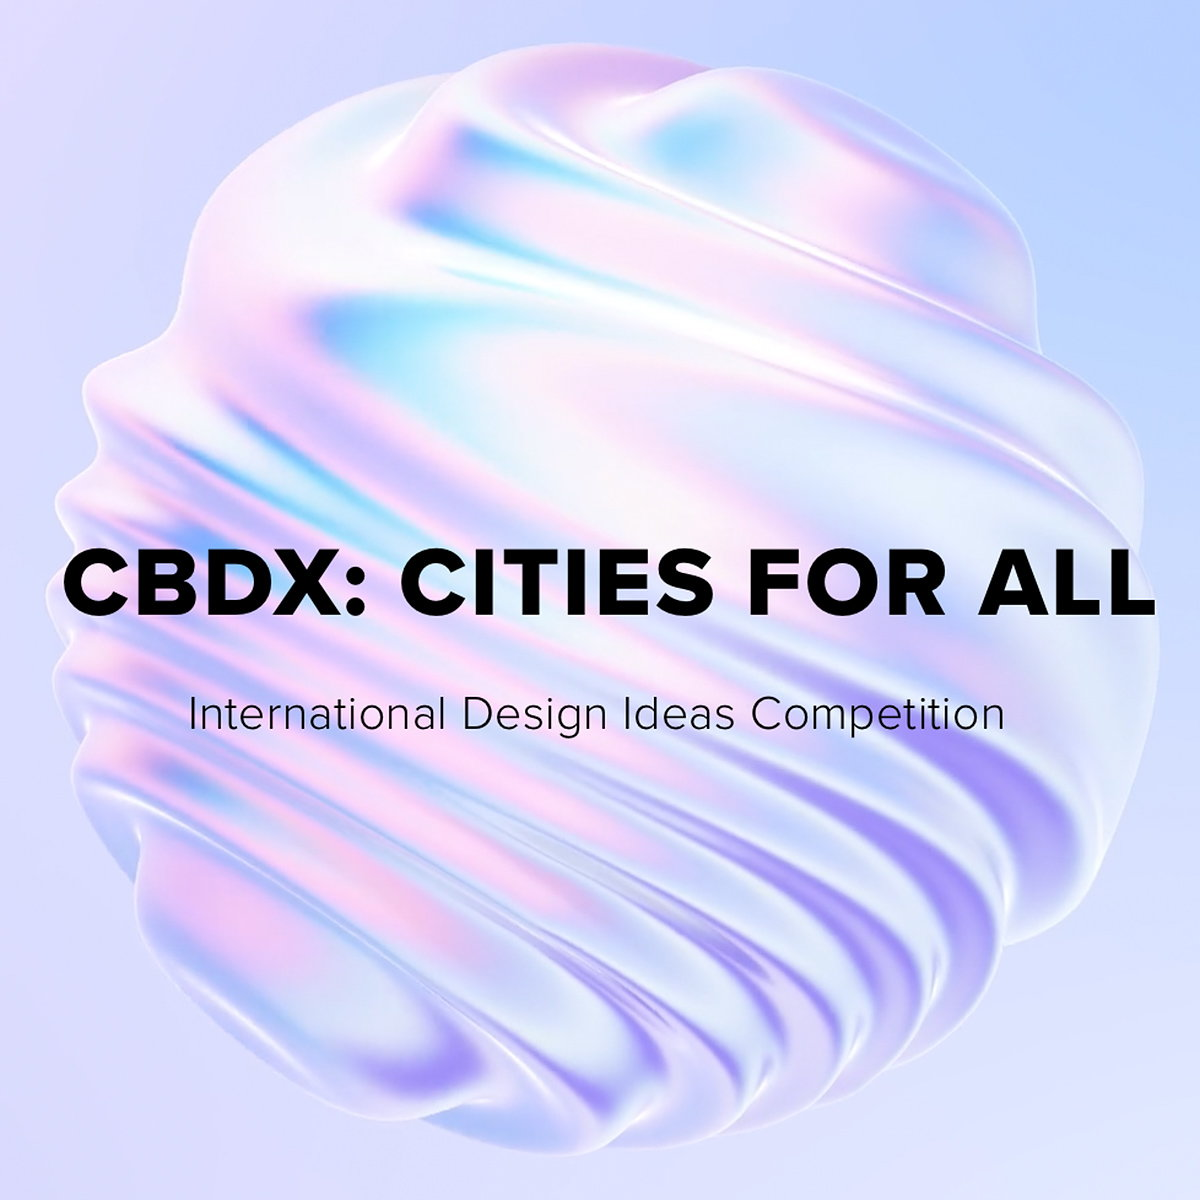 CBDX - Cities for All